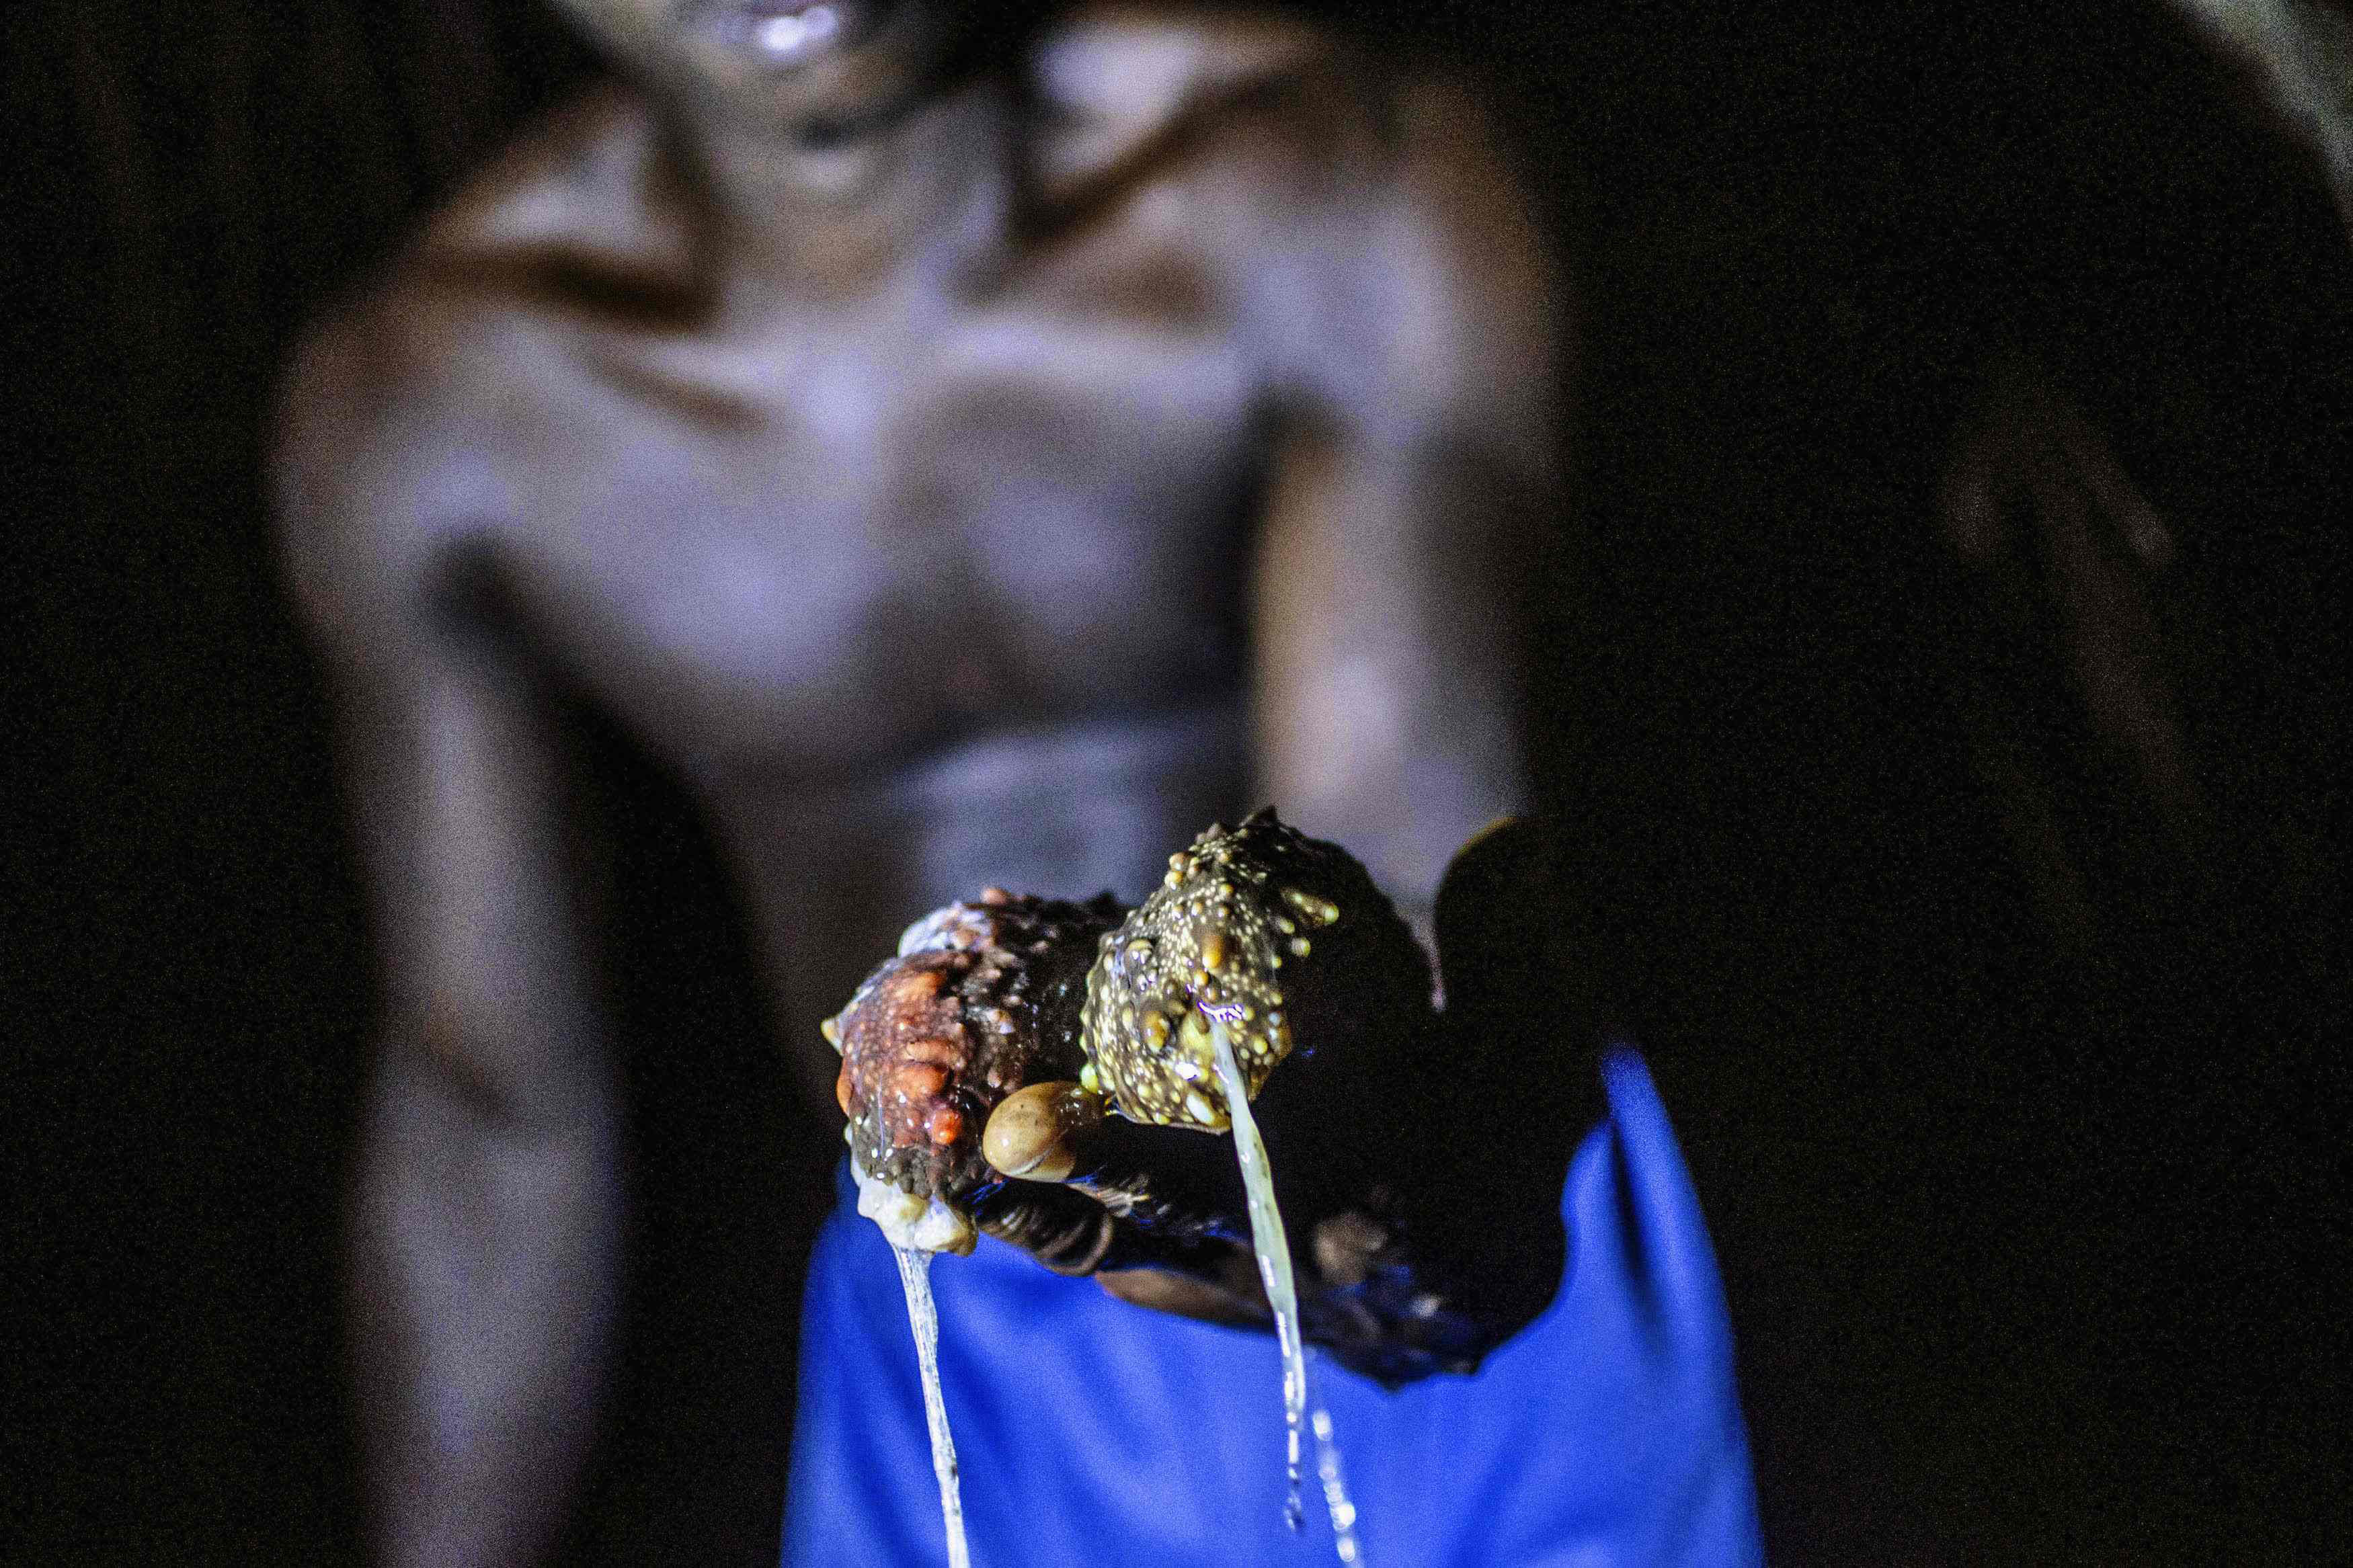 African commodity: A collector holds two sea cucumbers in Dublin, Sierra Leone, in January. The lowly sea cucumber, a fleshy, sausage-shaped creature that scavenges for food on the seabed, is prized in China for its medicinal properties and as a natural aphrodisiac. | REUTERS